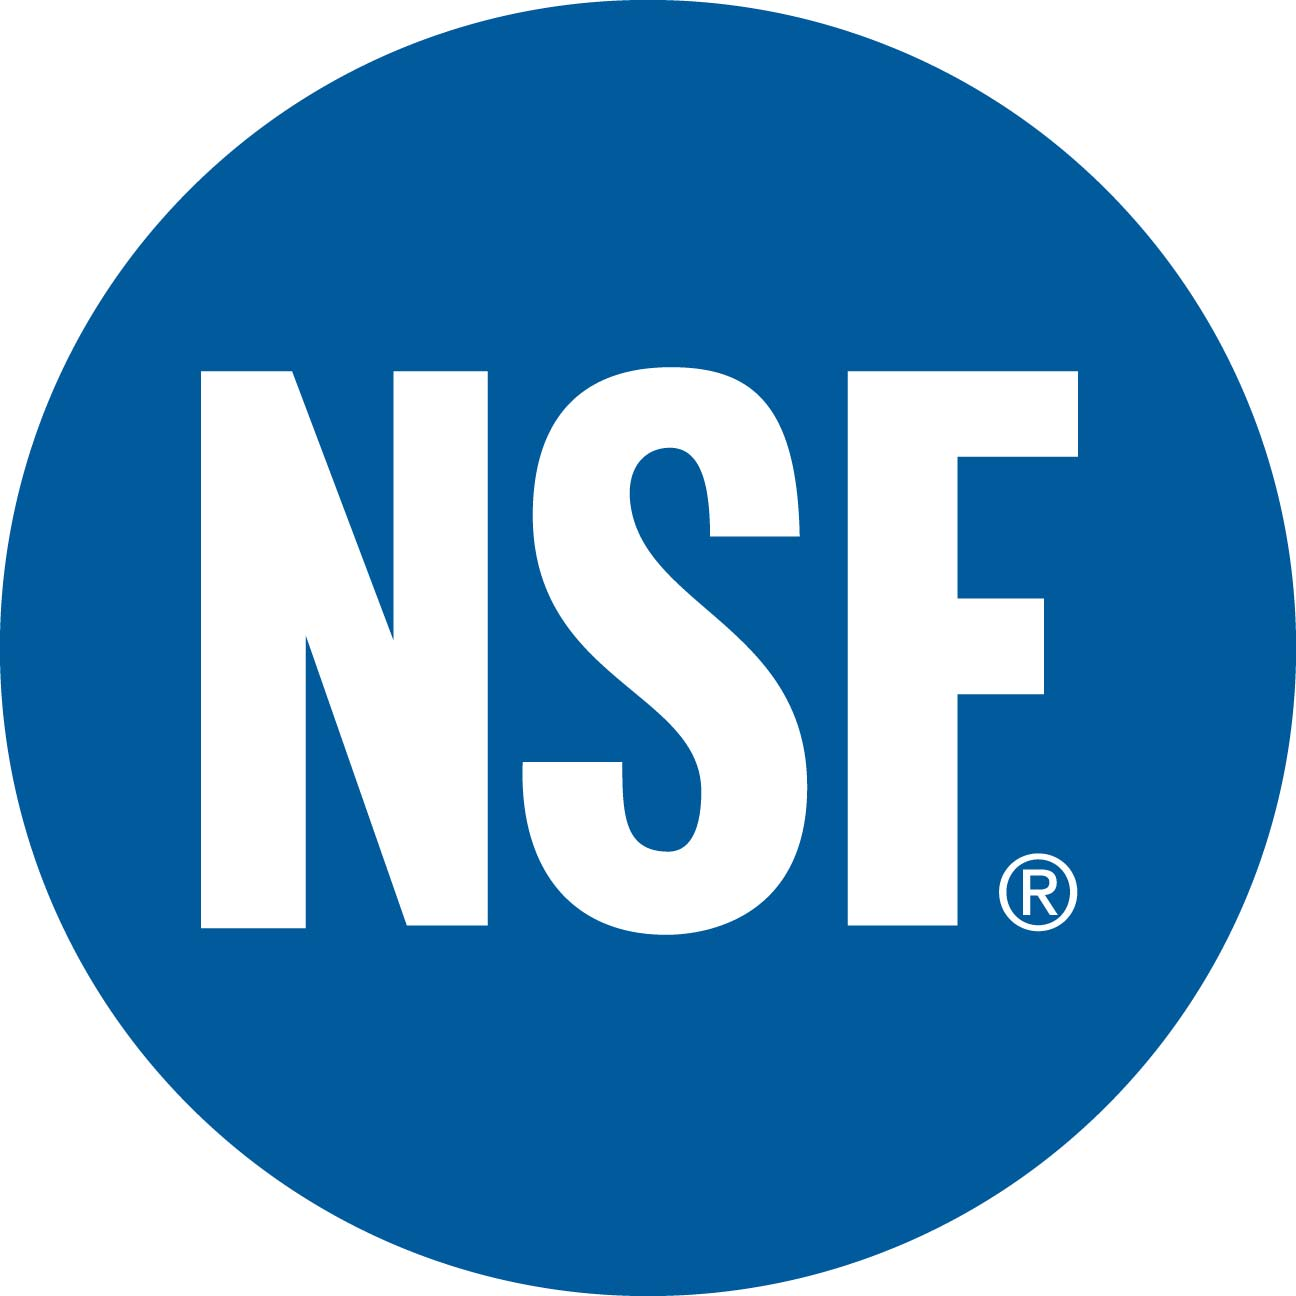 Nsf International Png - Guelph Food Technology Centre merges with NSF International - New ...